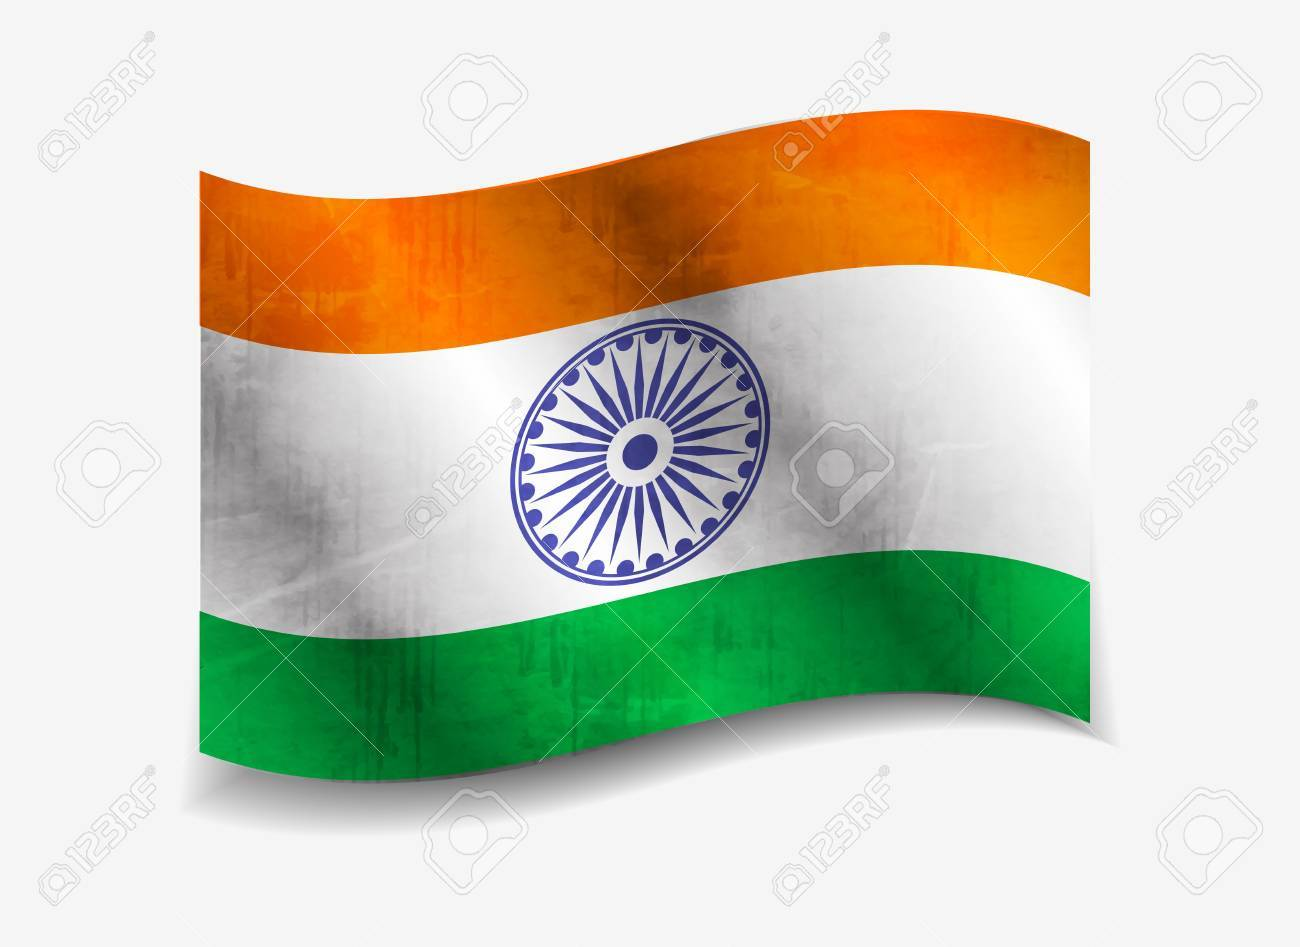 india flag design with Event Original, vector illustration Stock Vector - 12125662